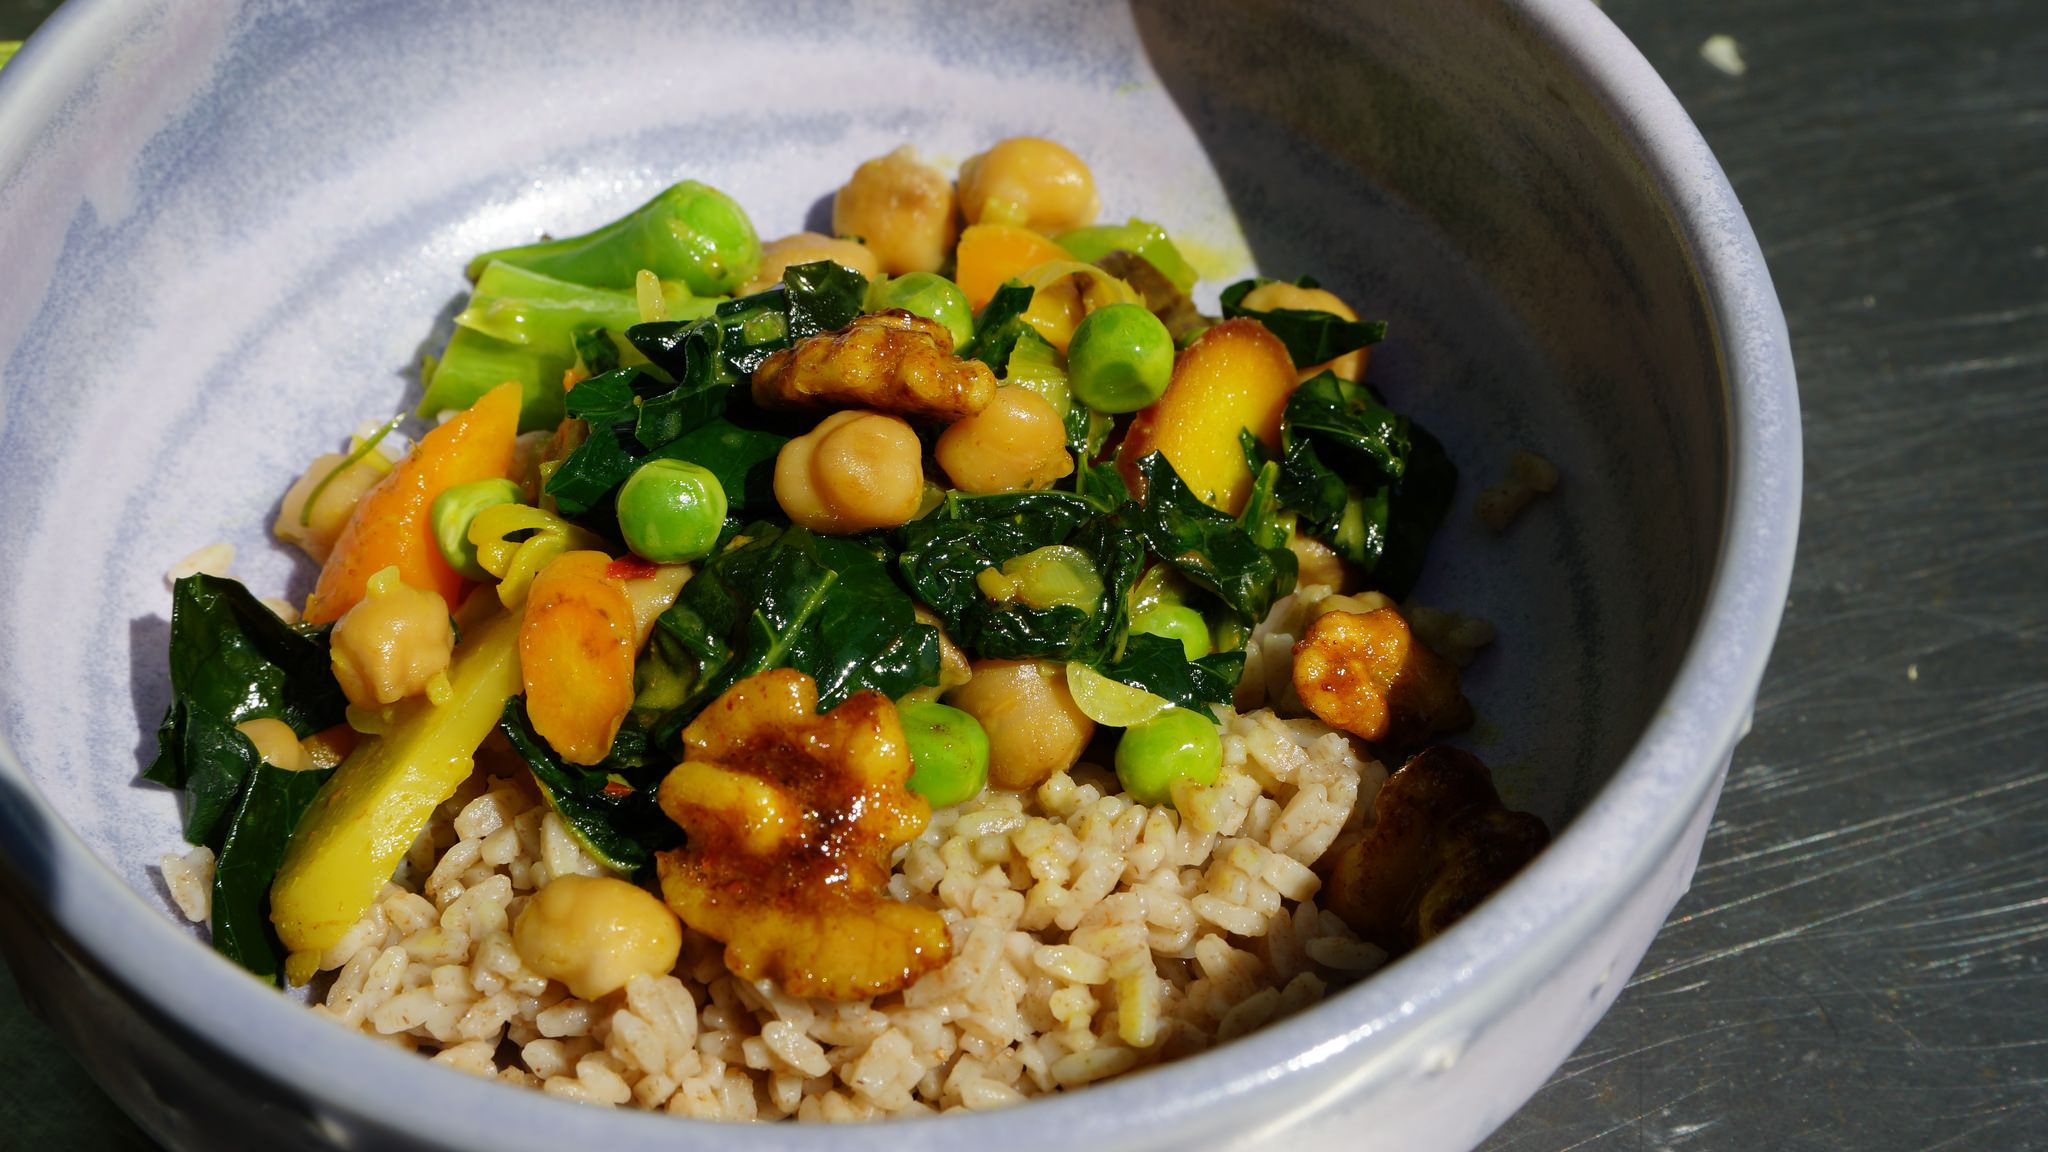 Chick Peas and Vegetable Curry in dish